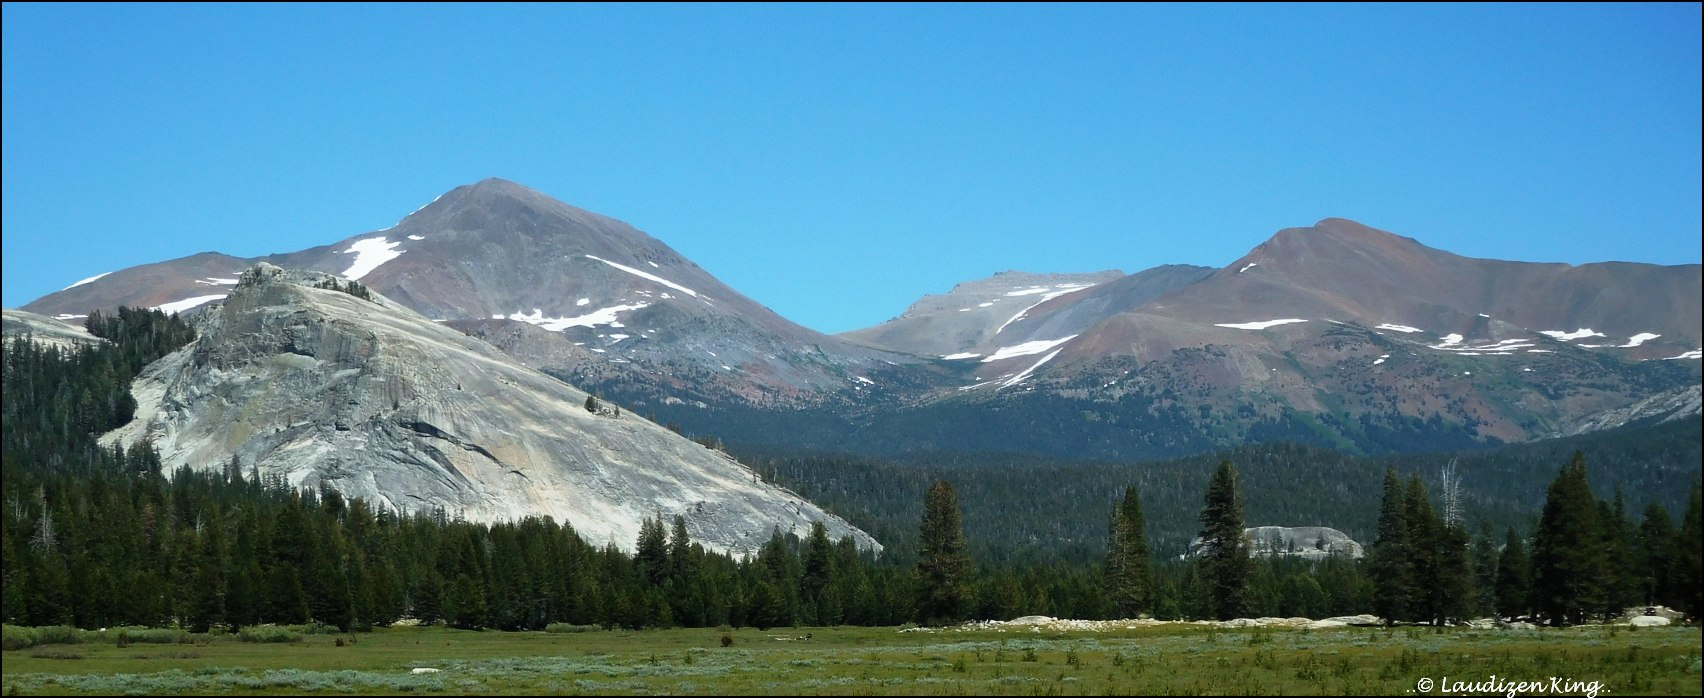 Tuolumne Meadows Vista